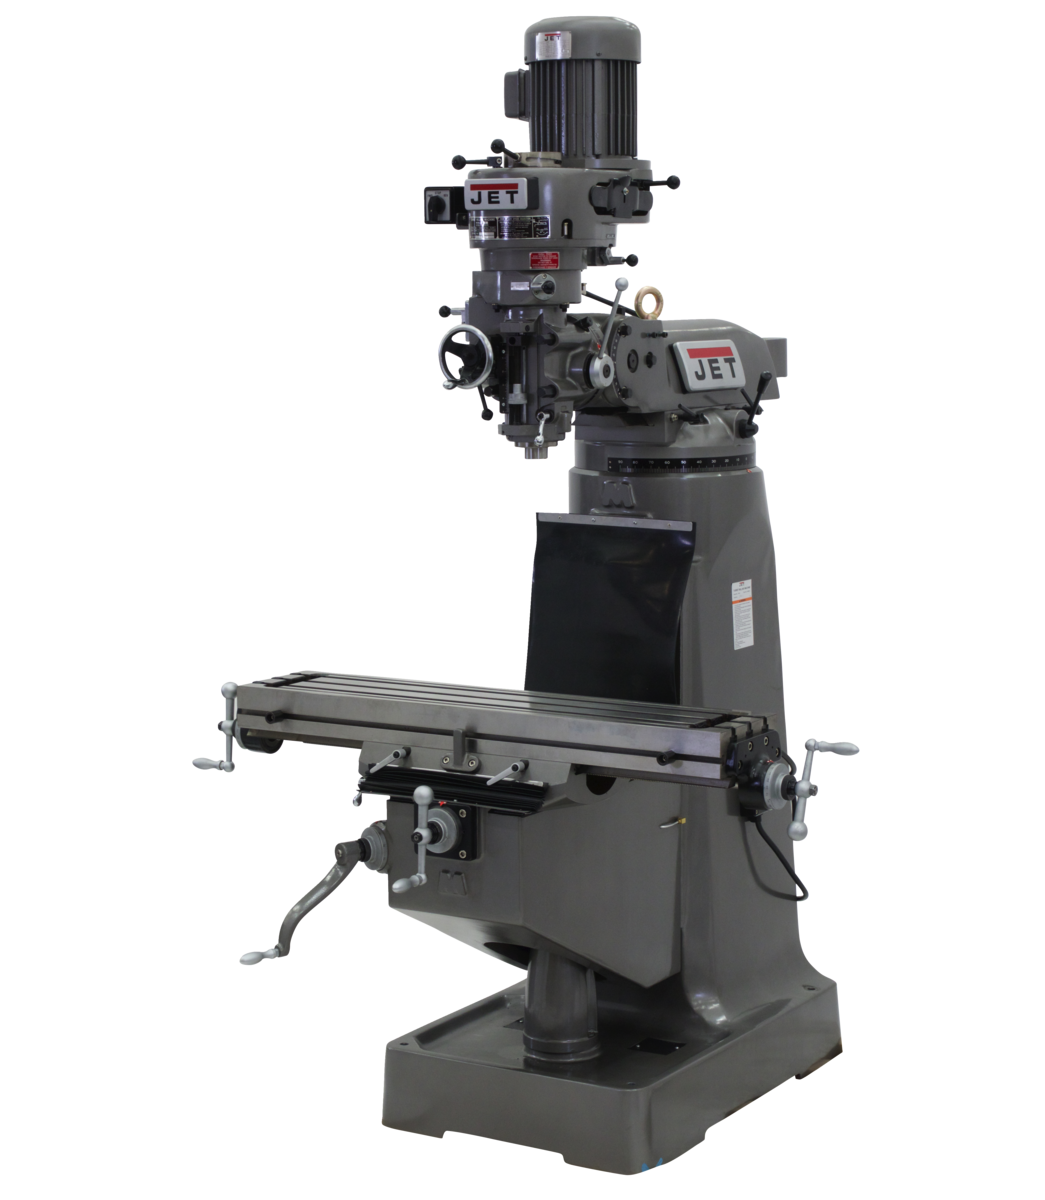 JTM-1 Mill With 3-Axis Newall DP500 DRO (Quill)